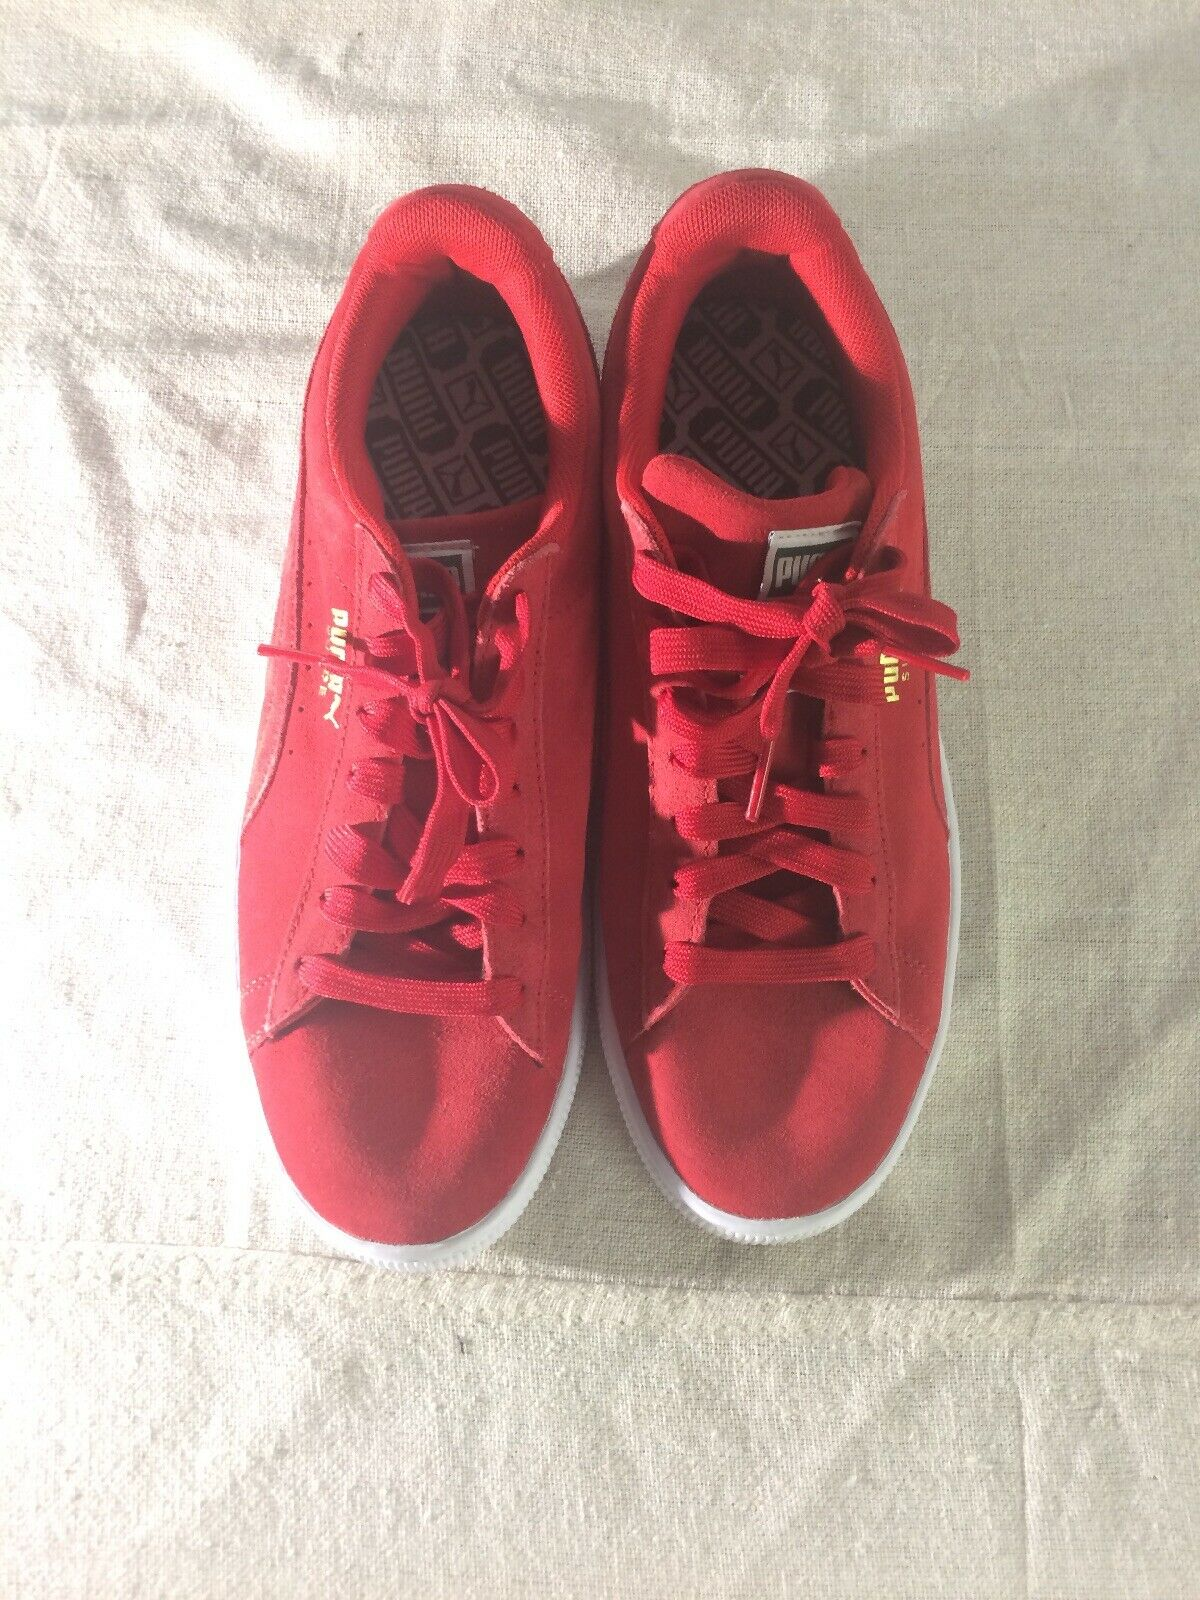 Mens Puma Trapstar Red Suede shoes Size 9